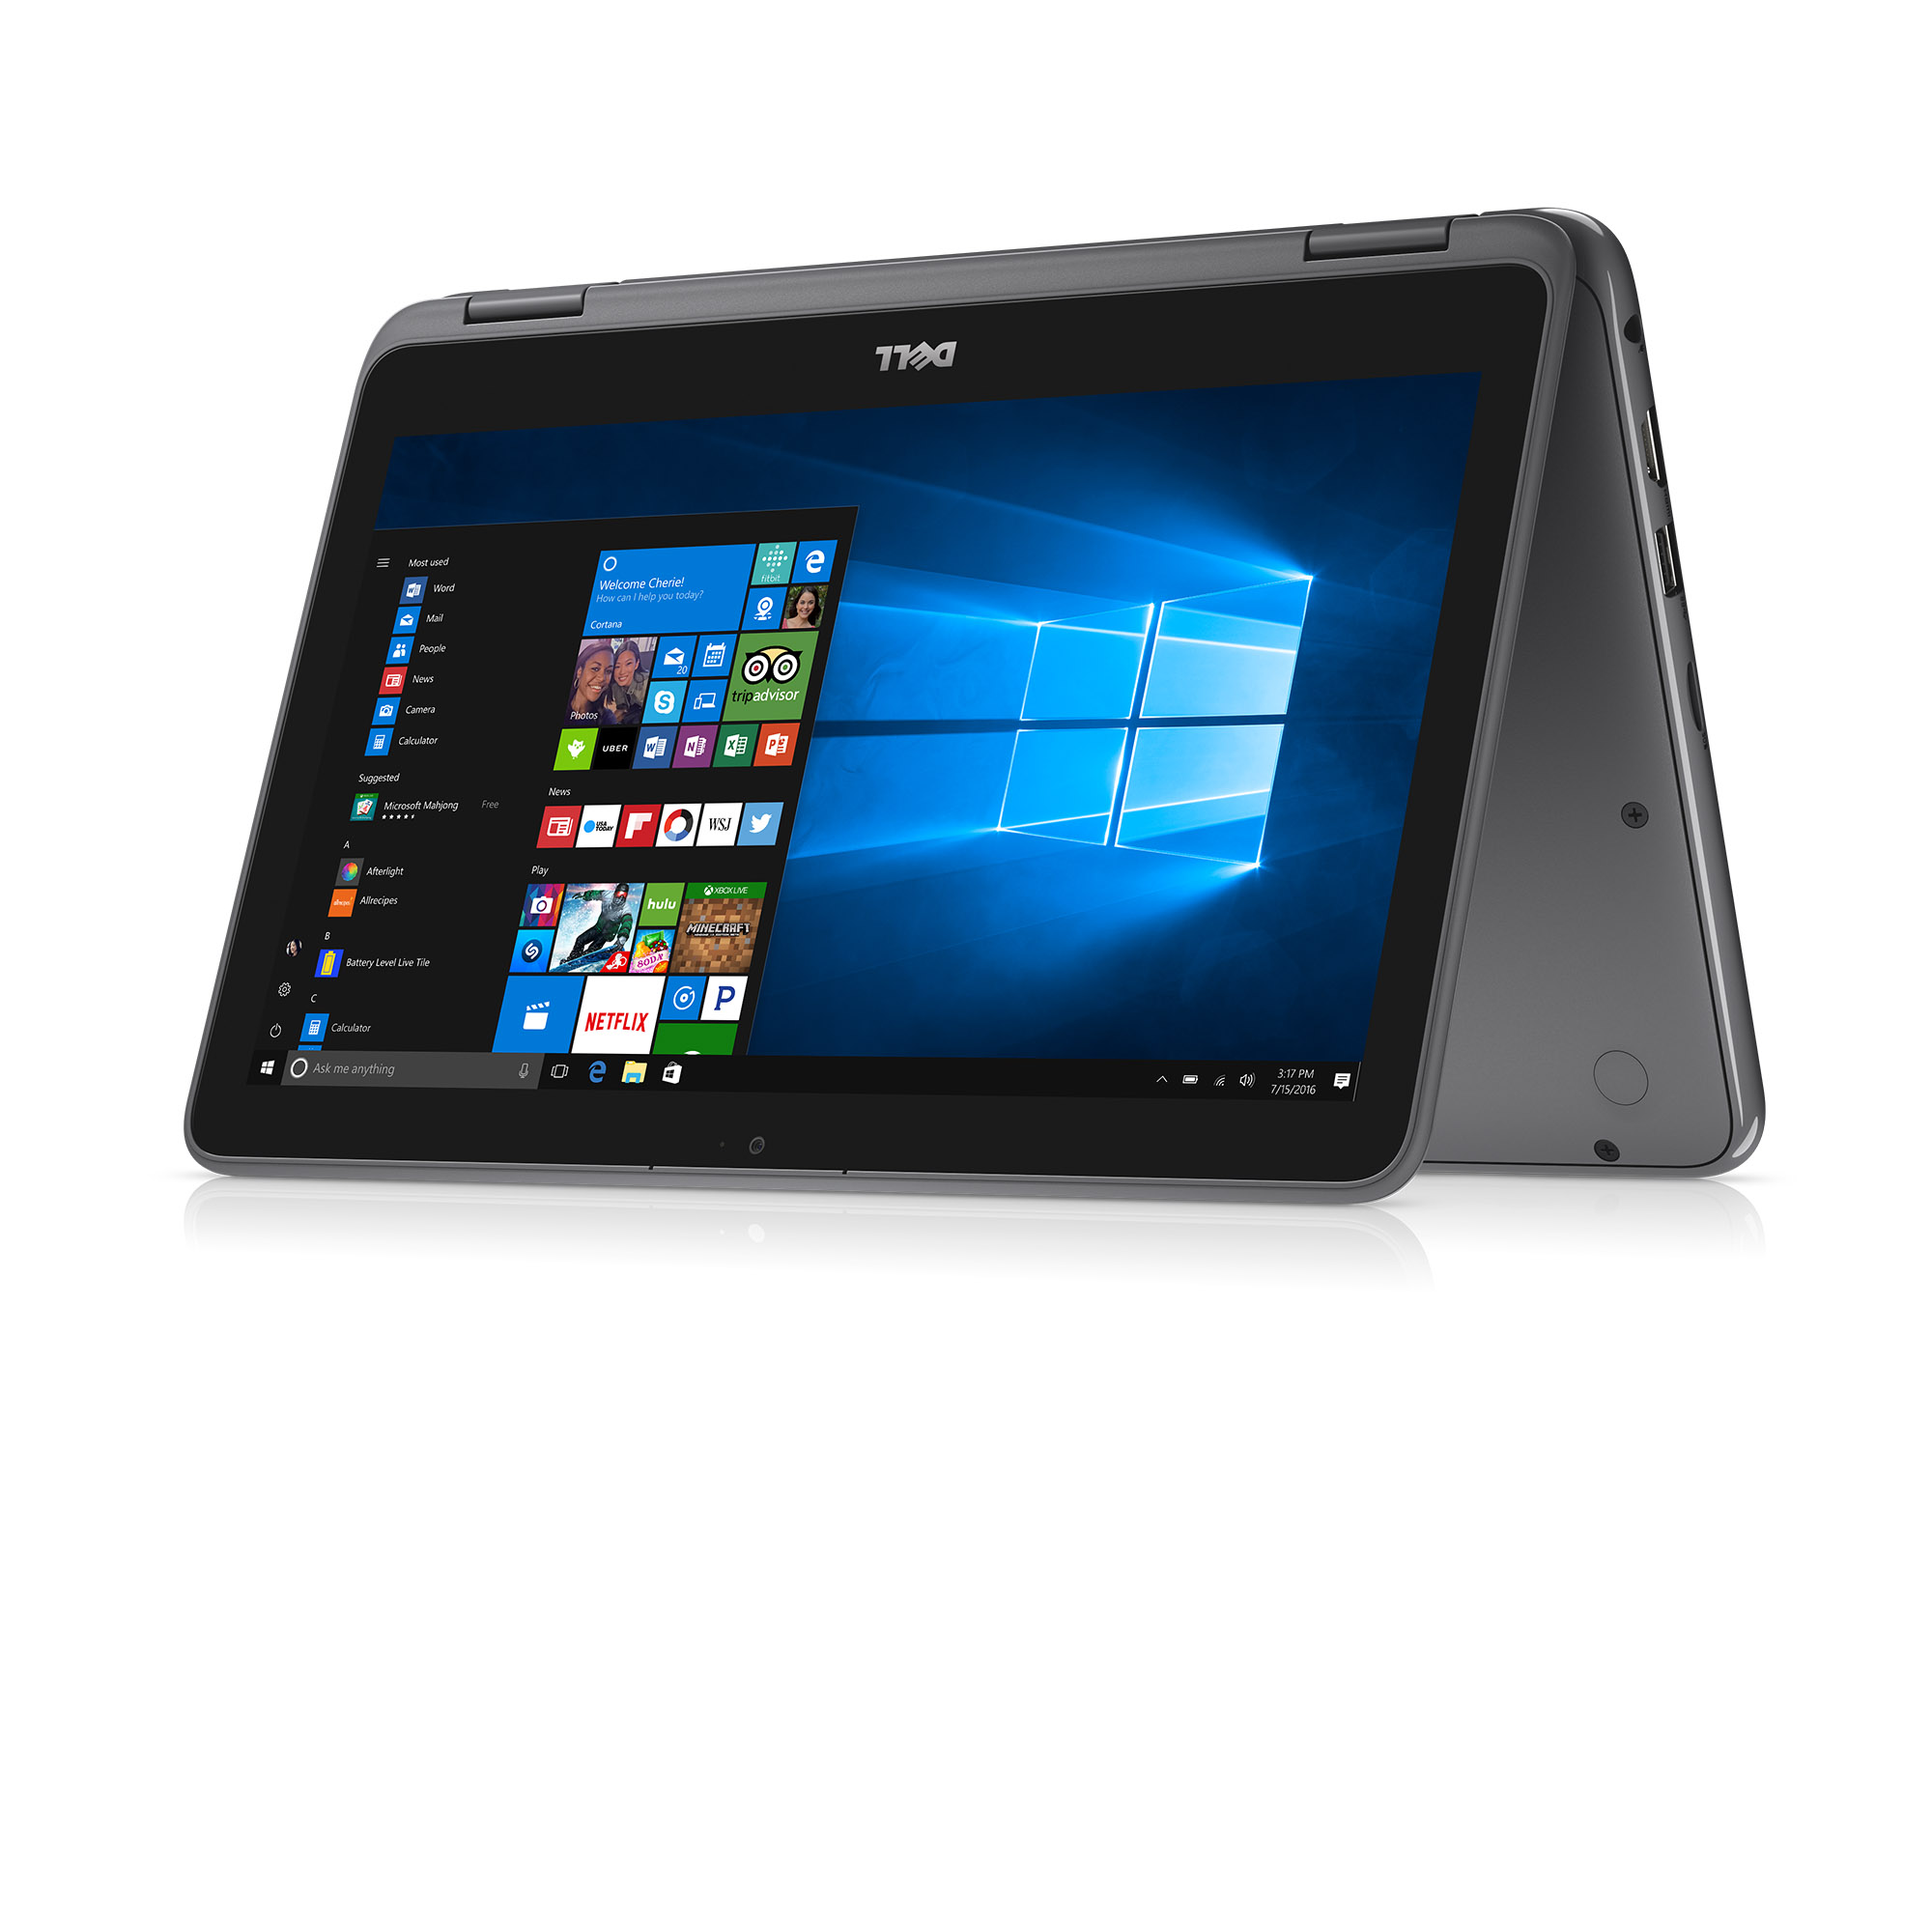 Dell - Inspiron 11 3000 2-in-1, 11.6-inch HD, Intel Pentium Processor N3710, 4GB 1600MHz DDR3L, 500GB 5400 RPM HDD, Intel HD Graphics